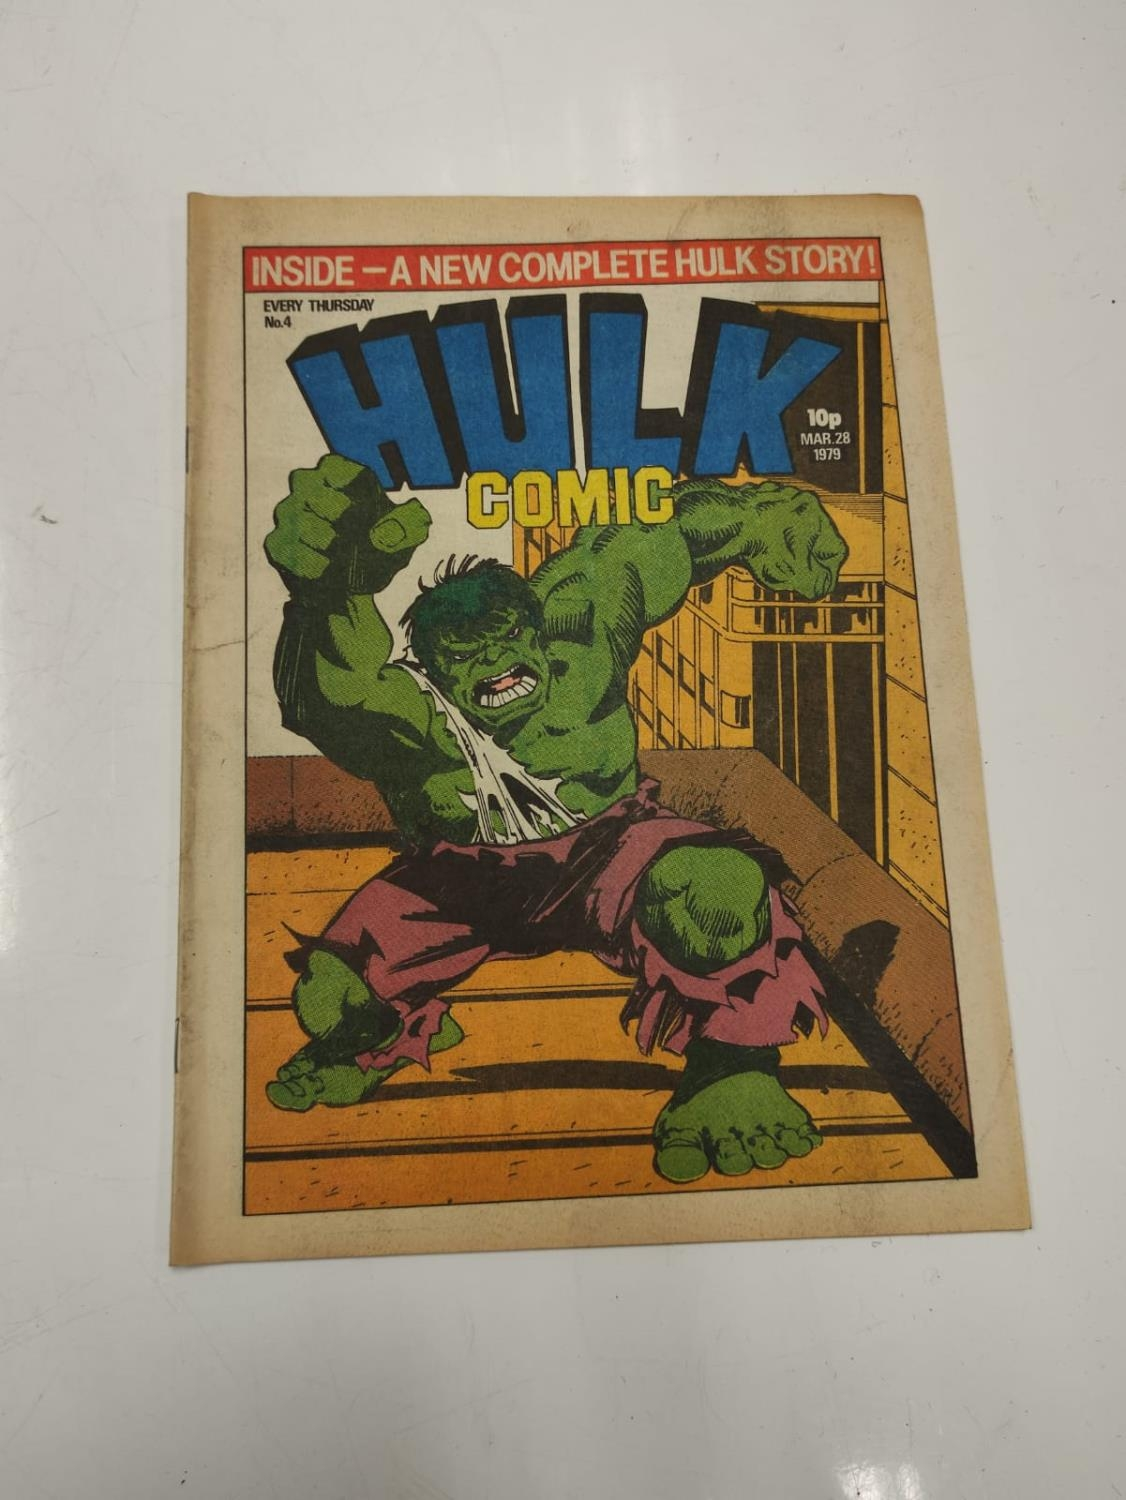 20 editions of mixed Vintage Marvel Comics. - Image 43 of 56